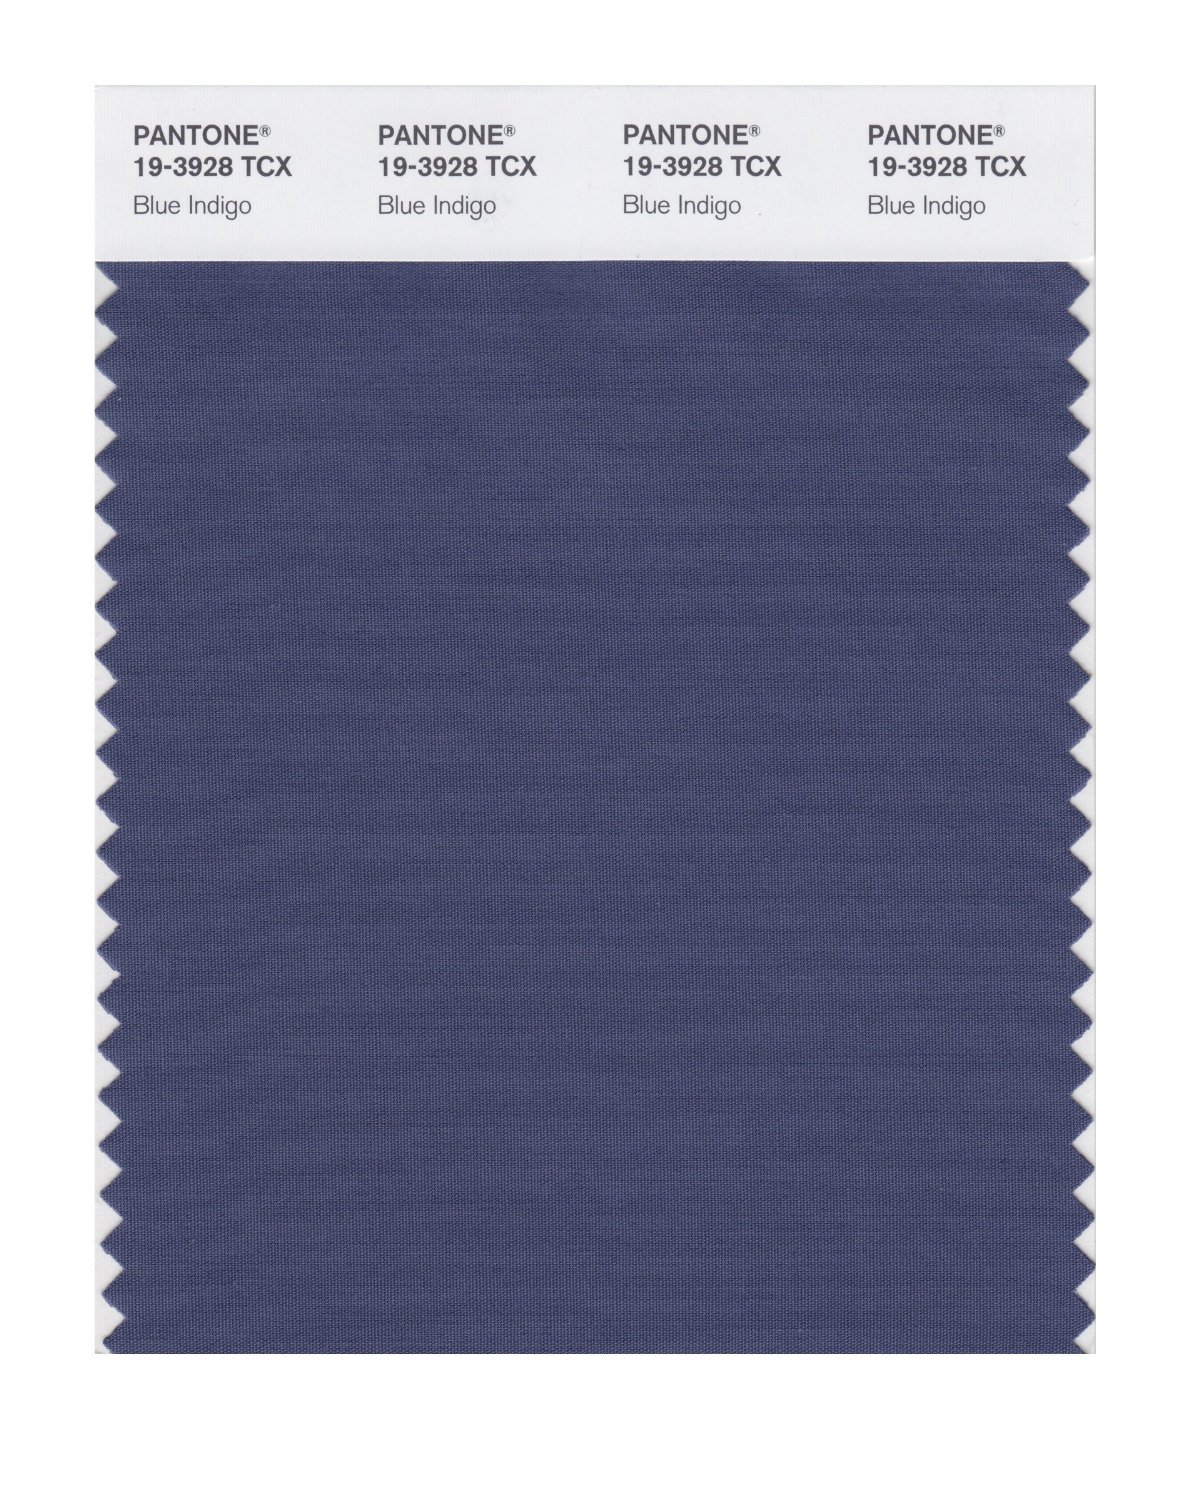 Pantone Smart Swatch 19-3928 Blue Indigo